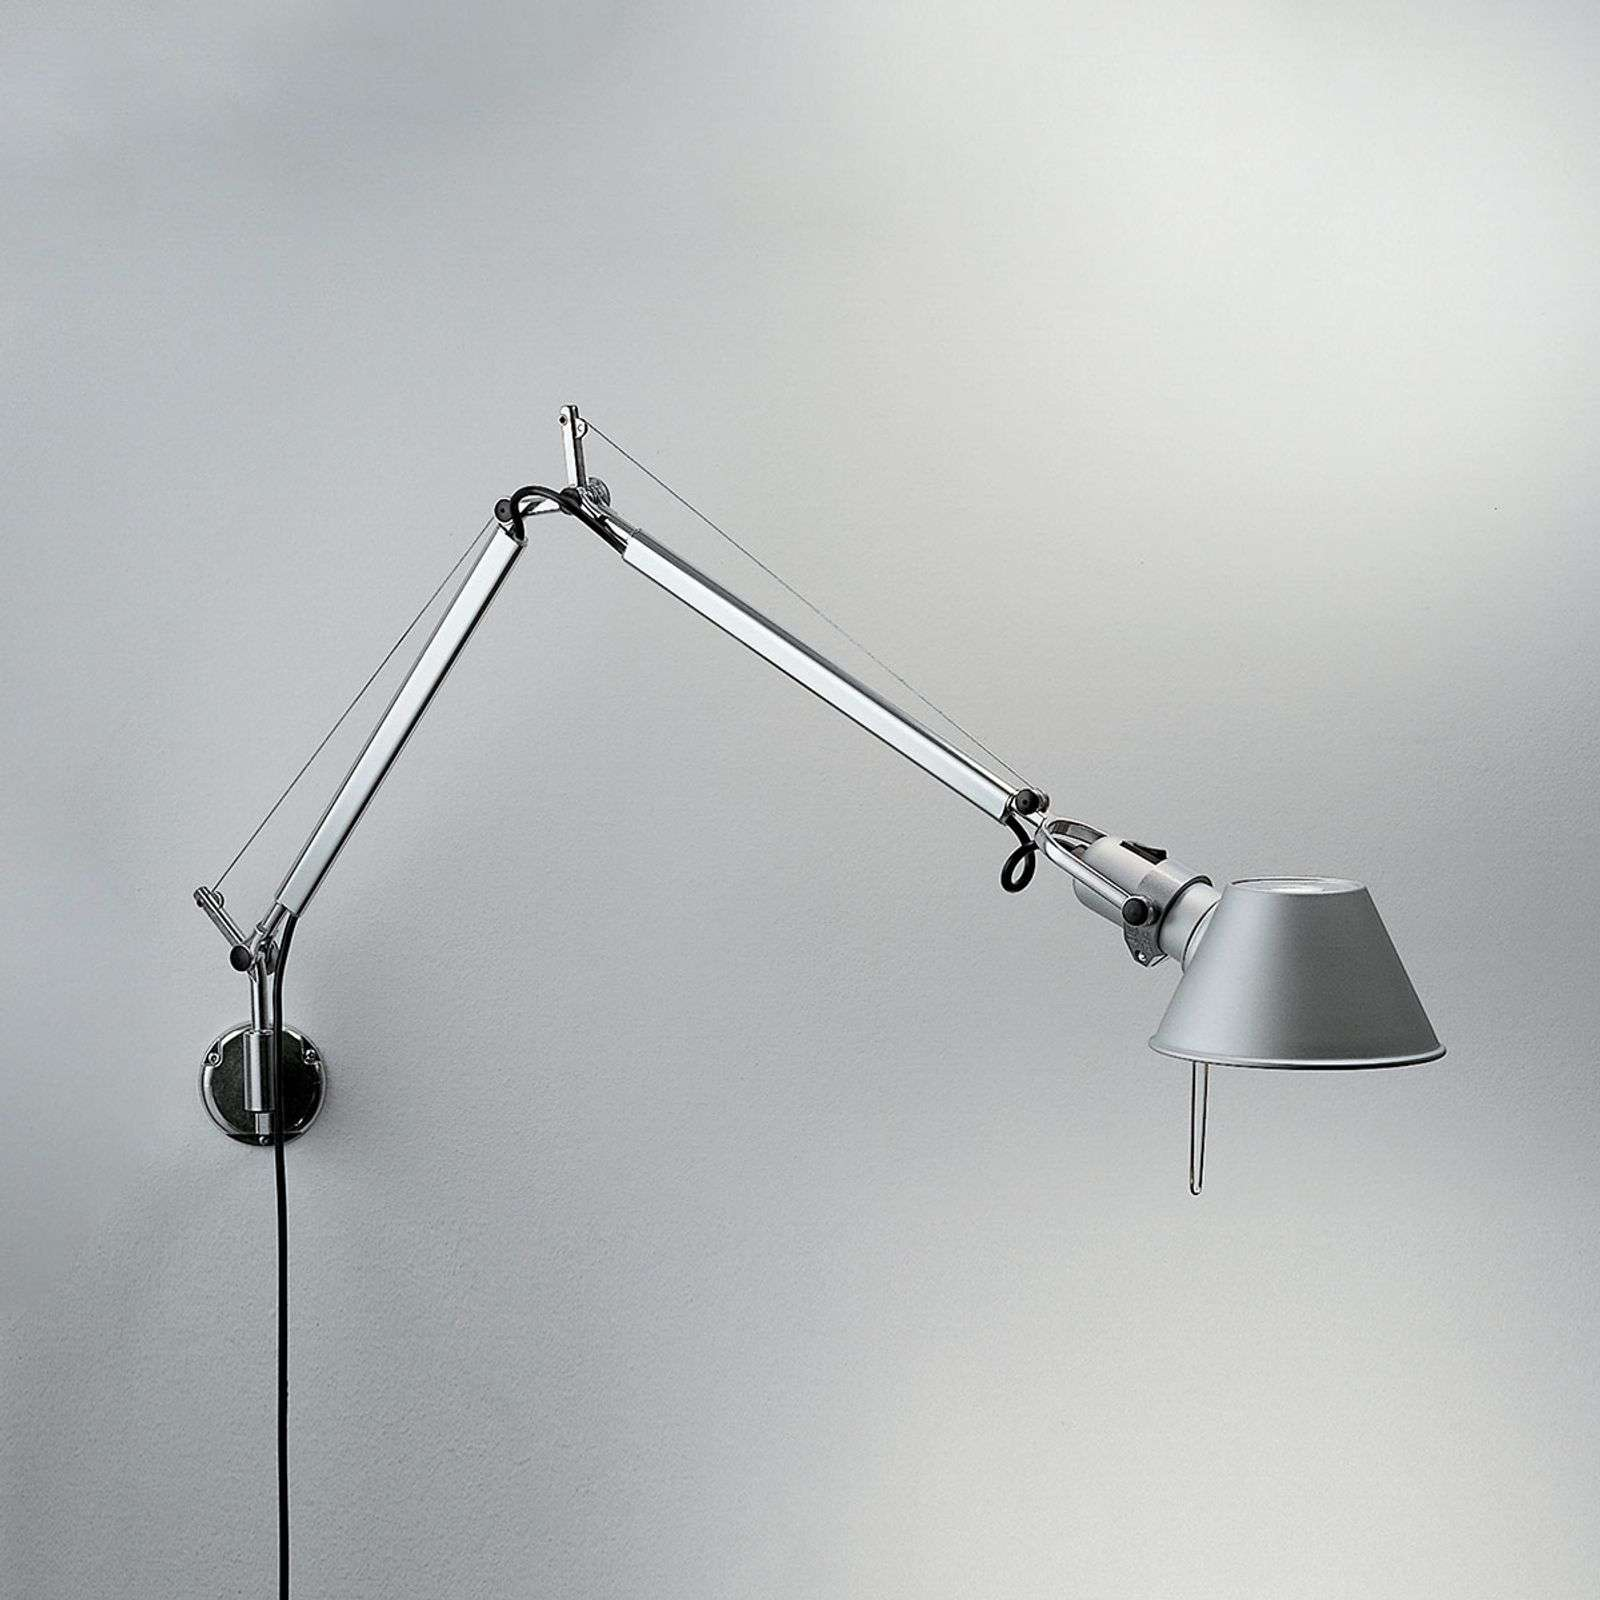 Artemide Tolomeo Mini applique LED 2 700 K